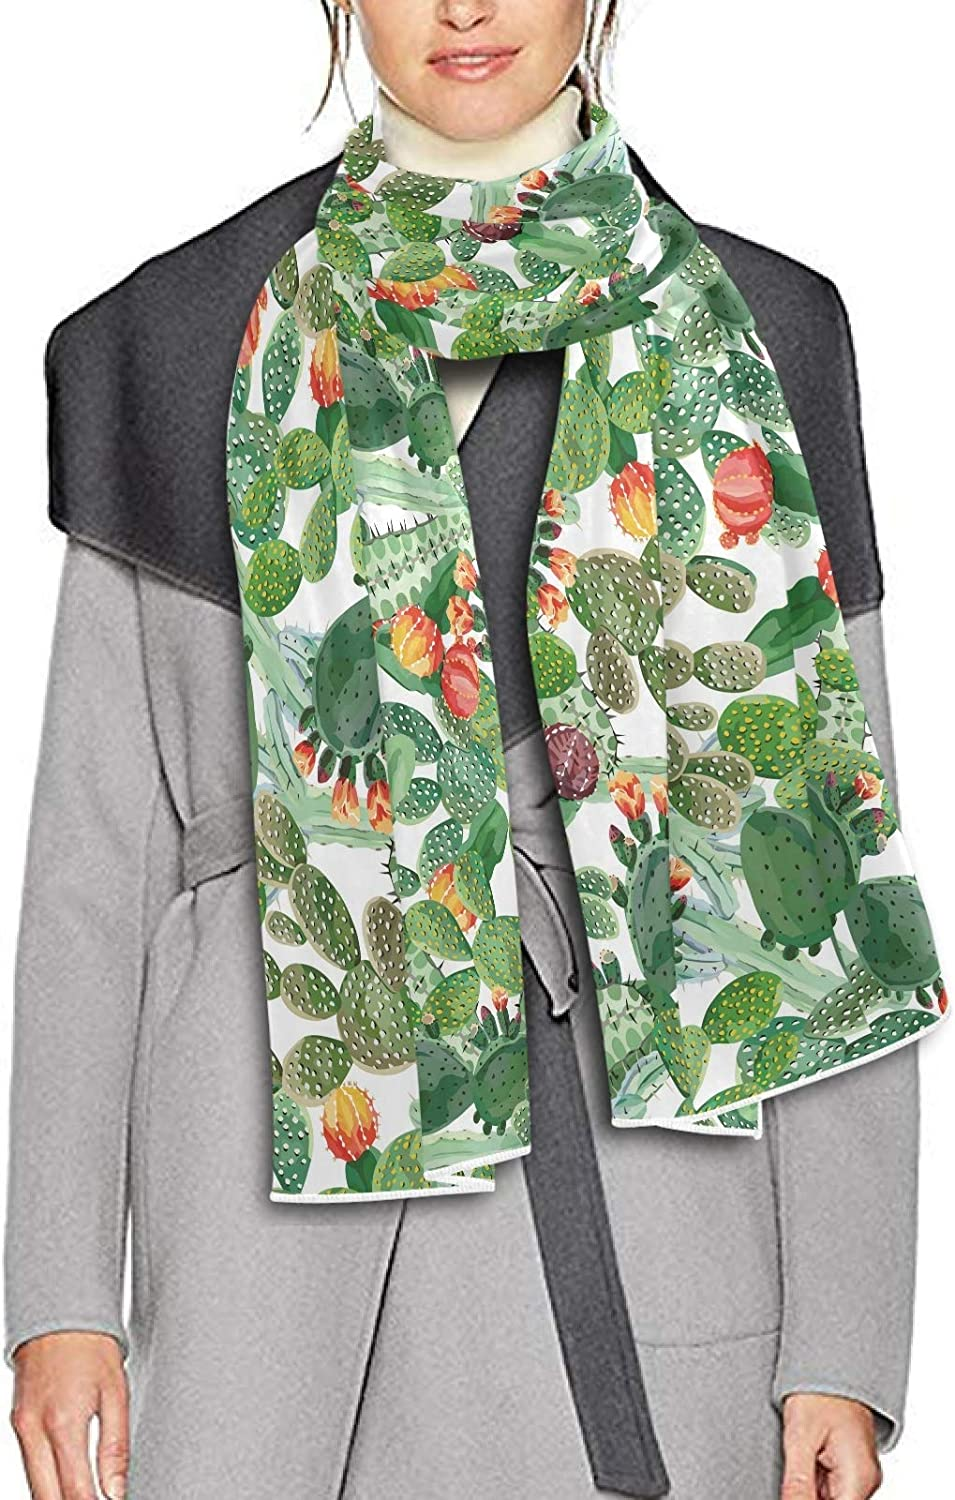 Scarf for Women and Men Cactus Flowers Blanket Shawl Scarf wraps Soft warm Winter Oversized Scarves Lightweight